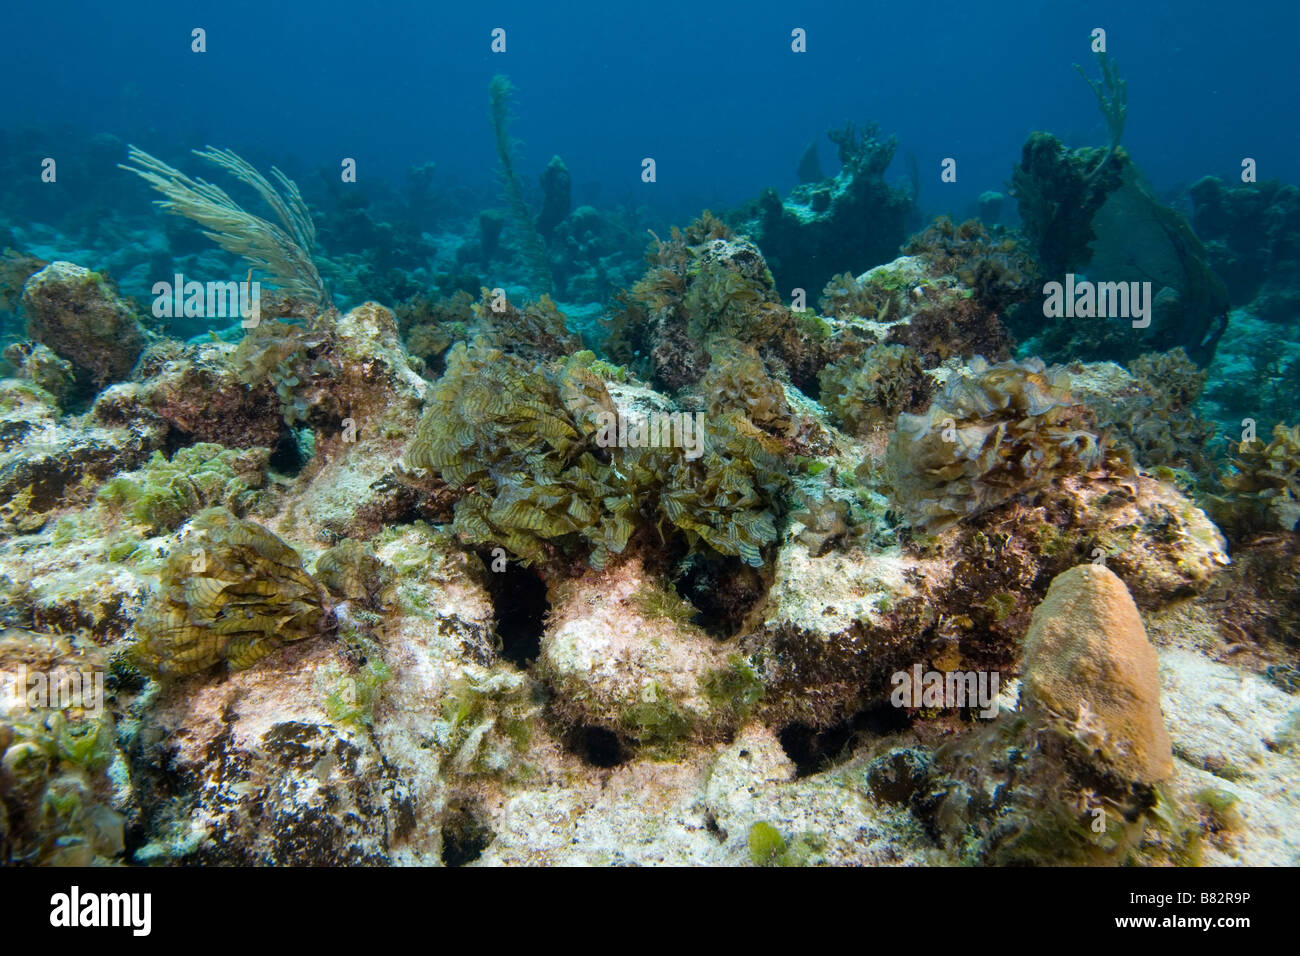 damaged Coral covered with algae Bahamas, ecological disaster, dead coral, hard coral, warm water, bleaching - Stock Image